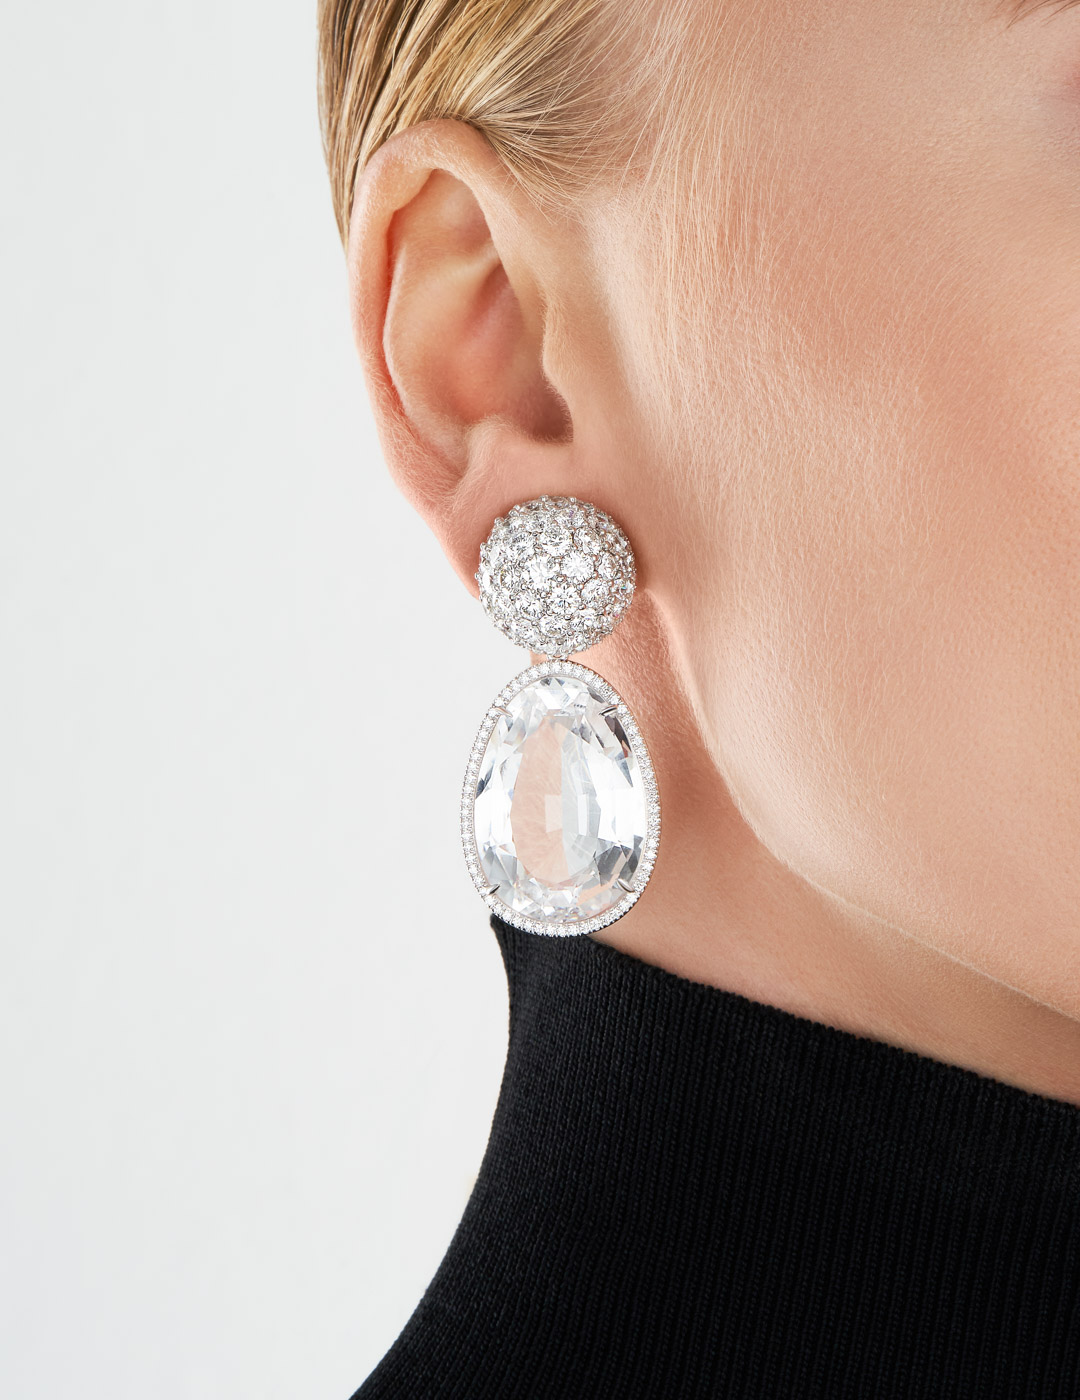 mish_products_earrings_PaveDome-Wht Topaz-ER-3